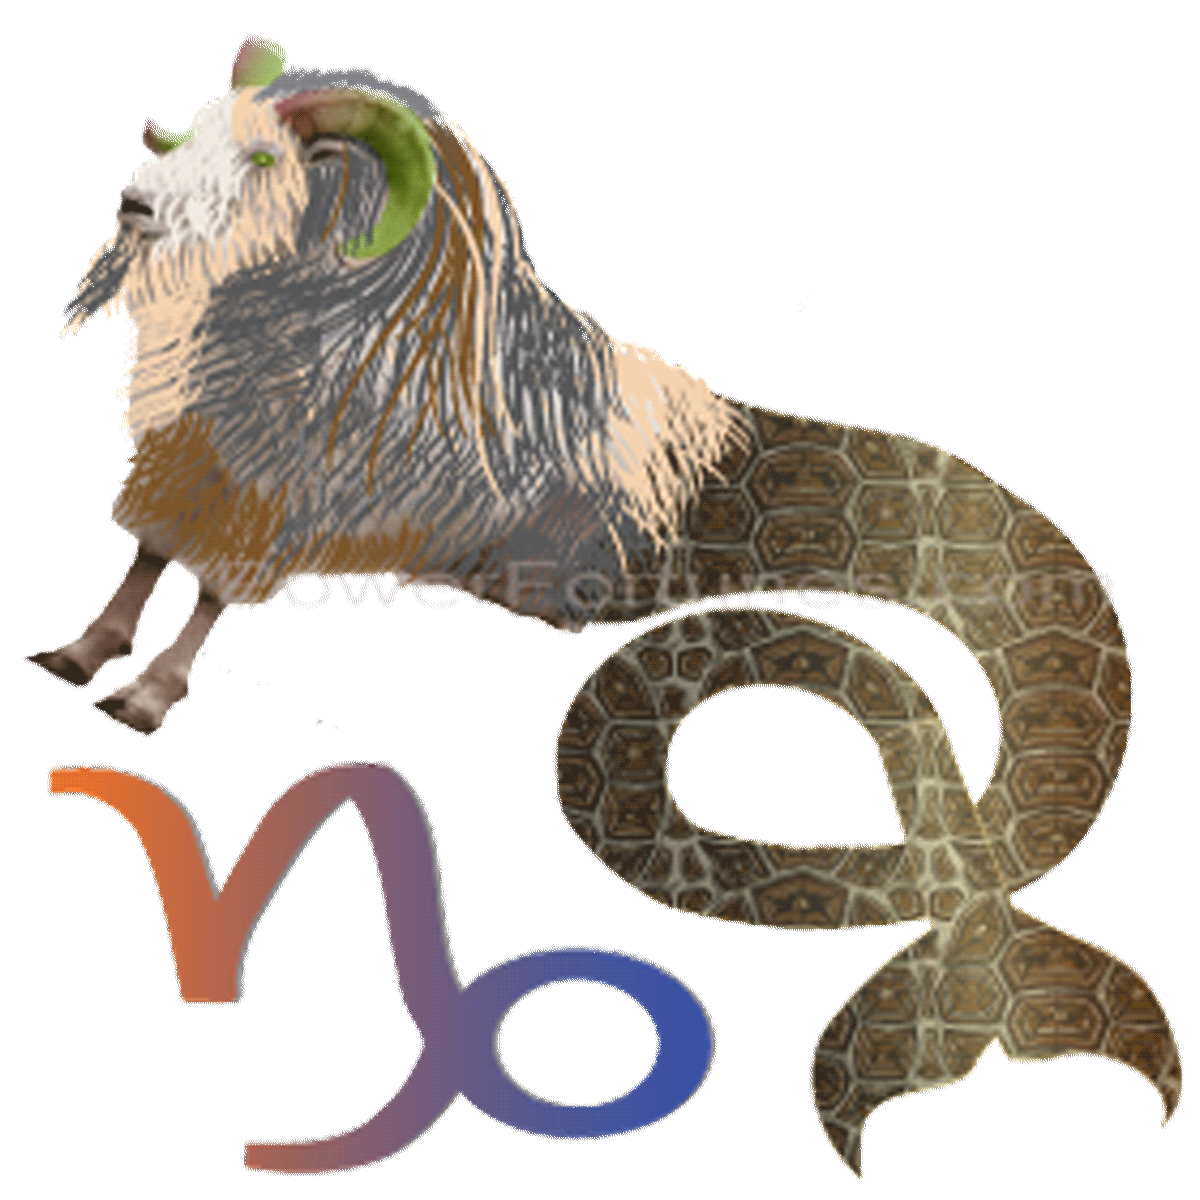 Monthly horoscopes for Capricorn, from 1st September to 30th September